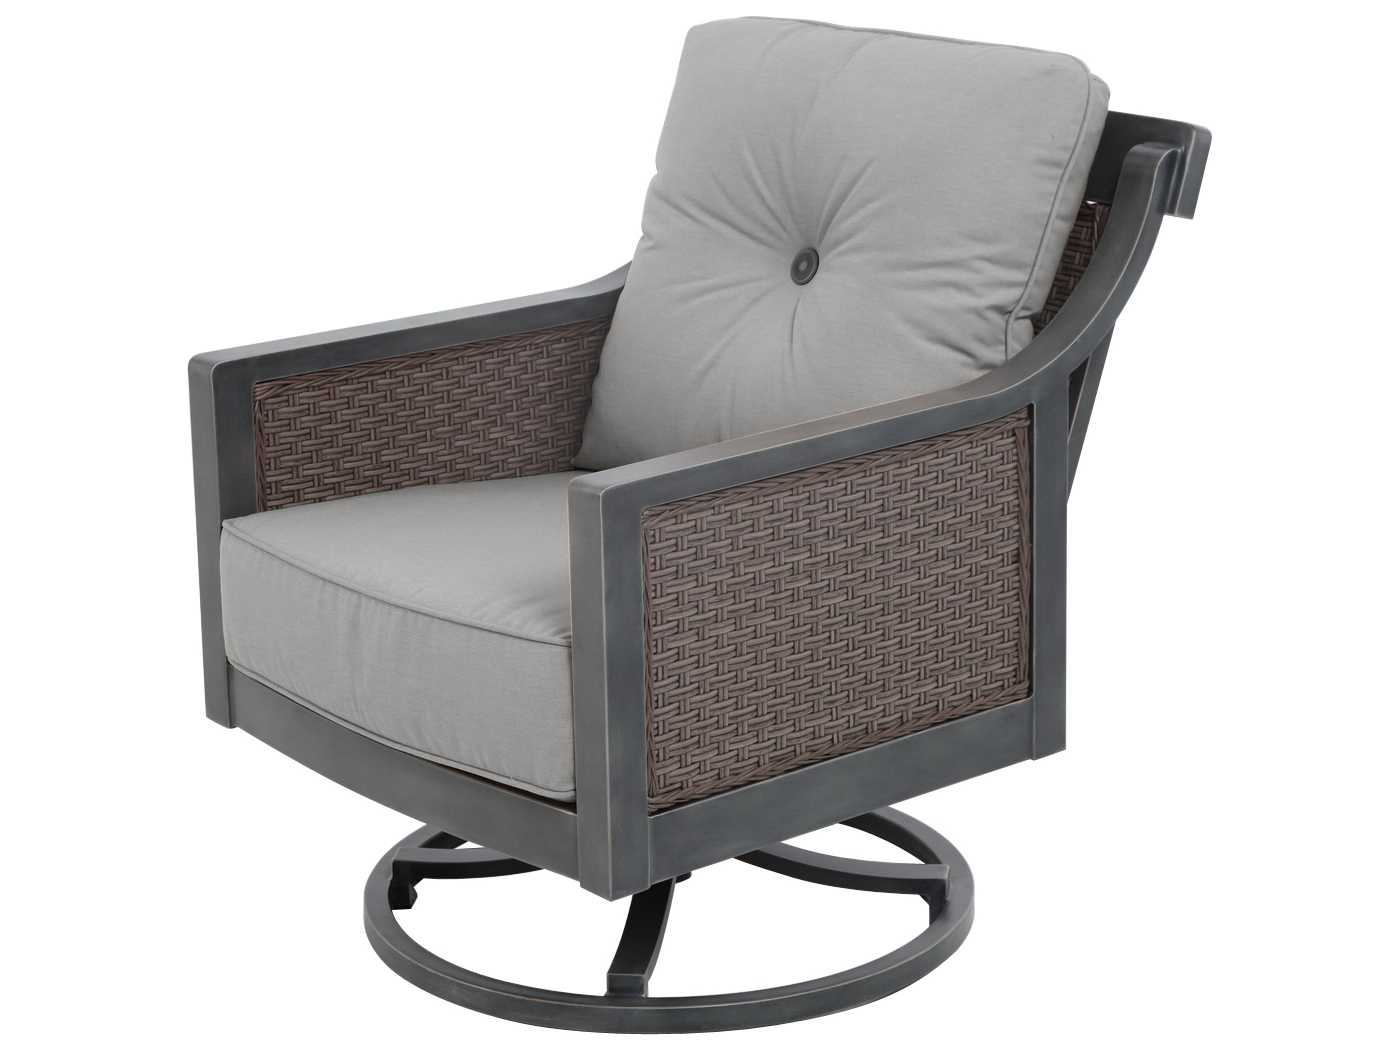 sailcloth beach chairs folding office chair uk sunvilla belize aluminum wicker swivel lounge in shadow